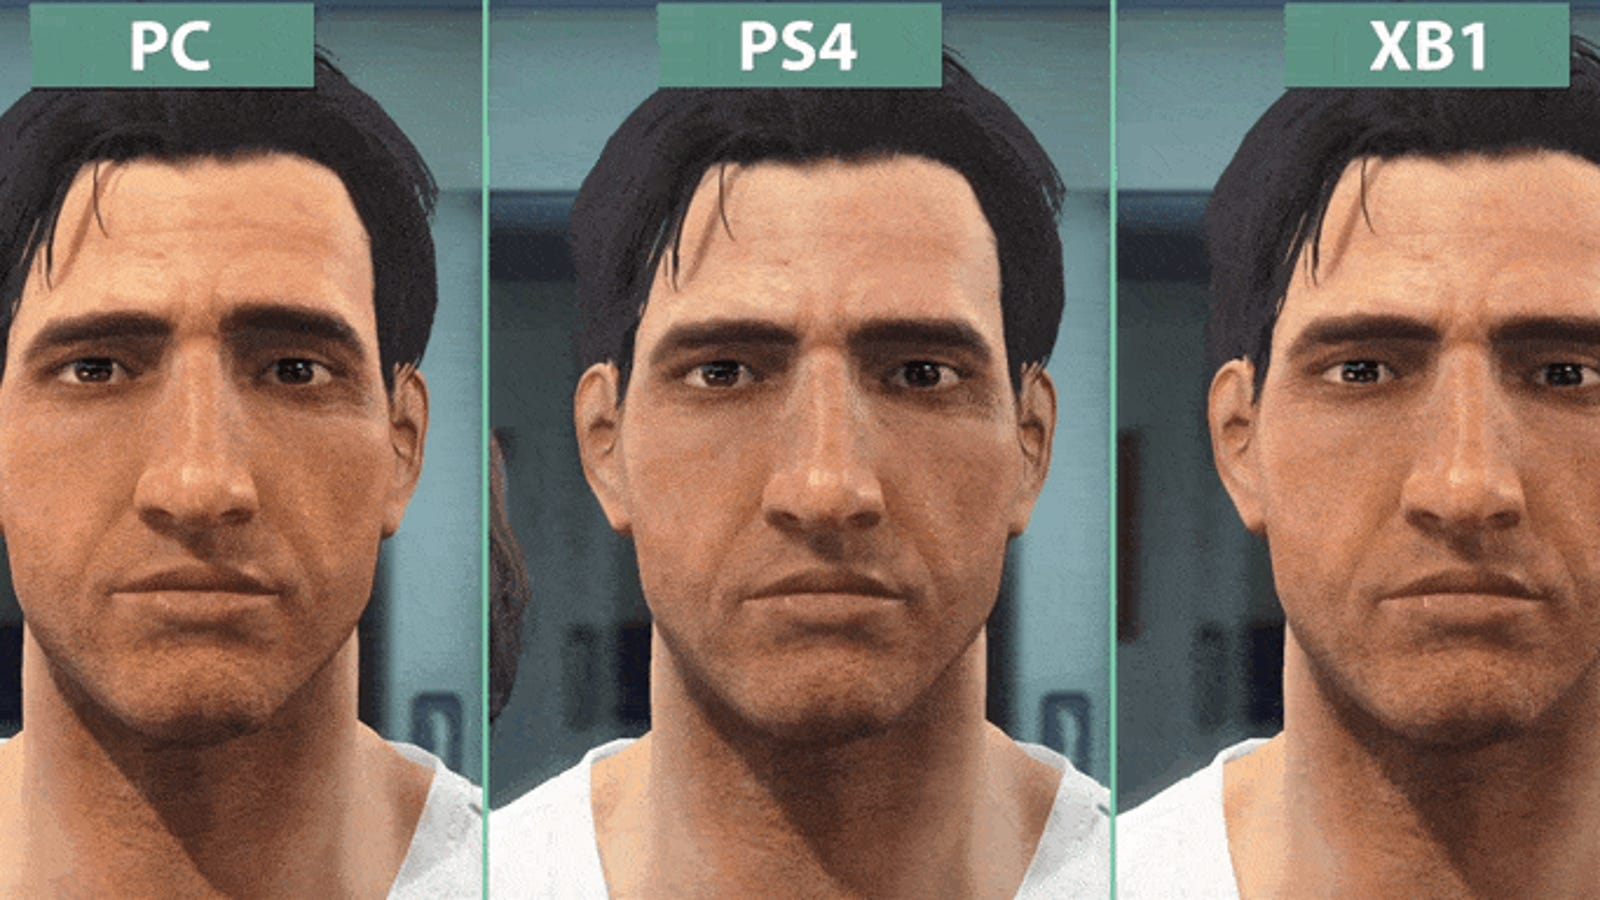 Fallout 4 PC Vs PS4 Xbox One